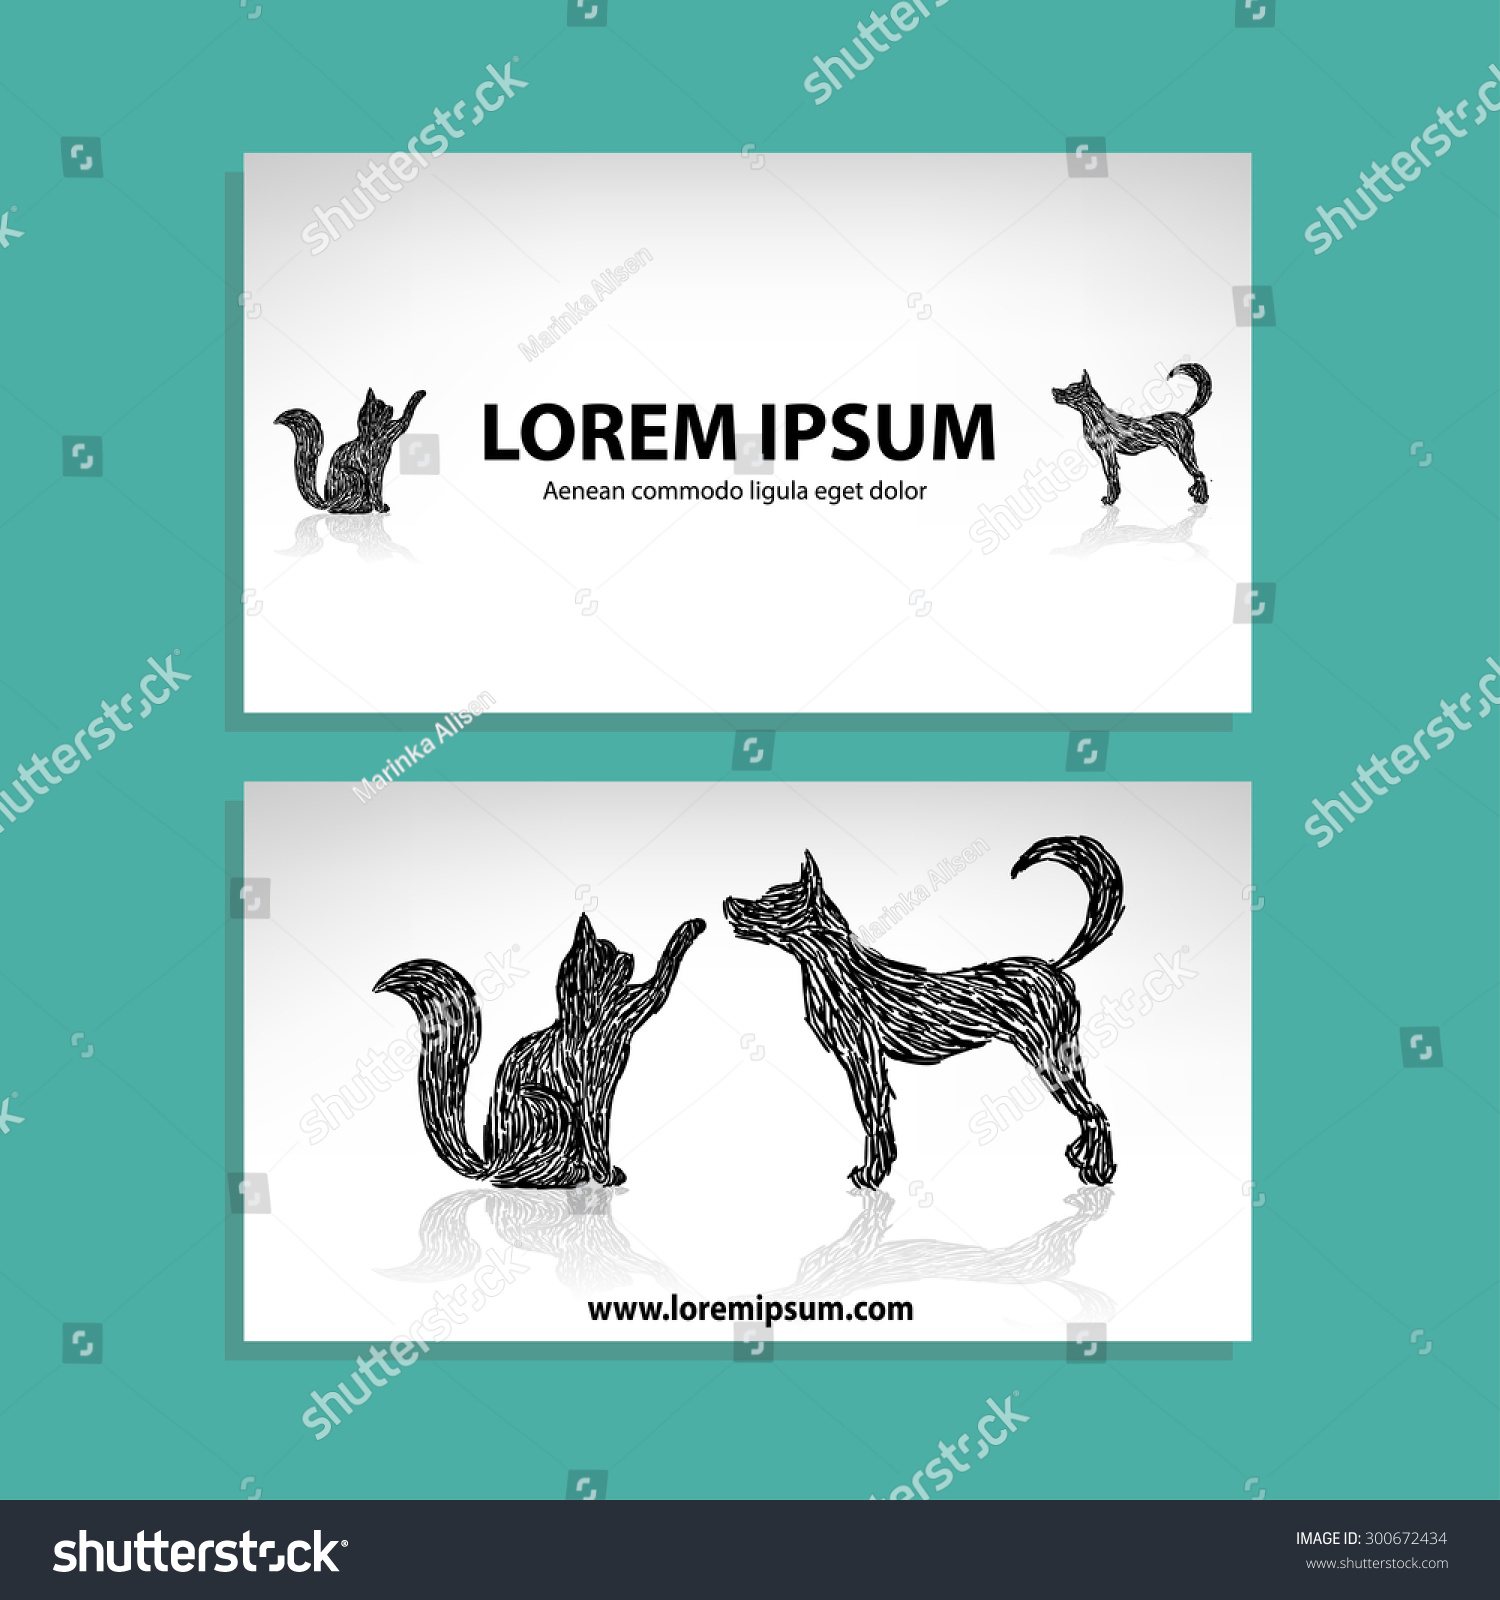 Wonderful Dog Business Cards Contemporary - Business Card Ideas ...